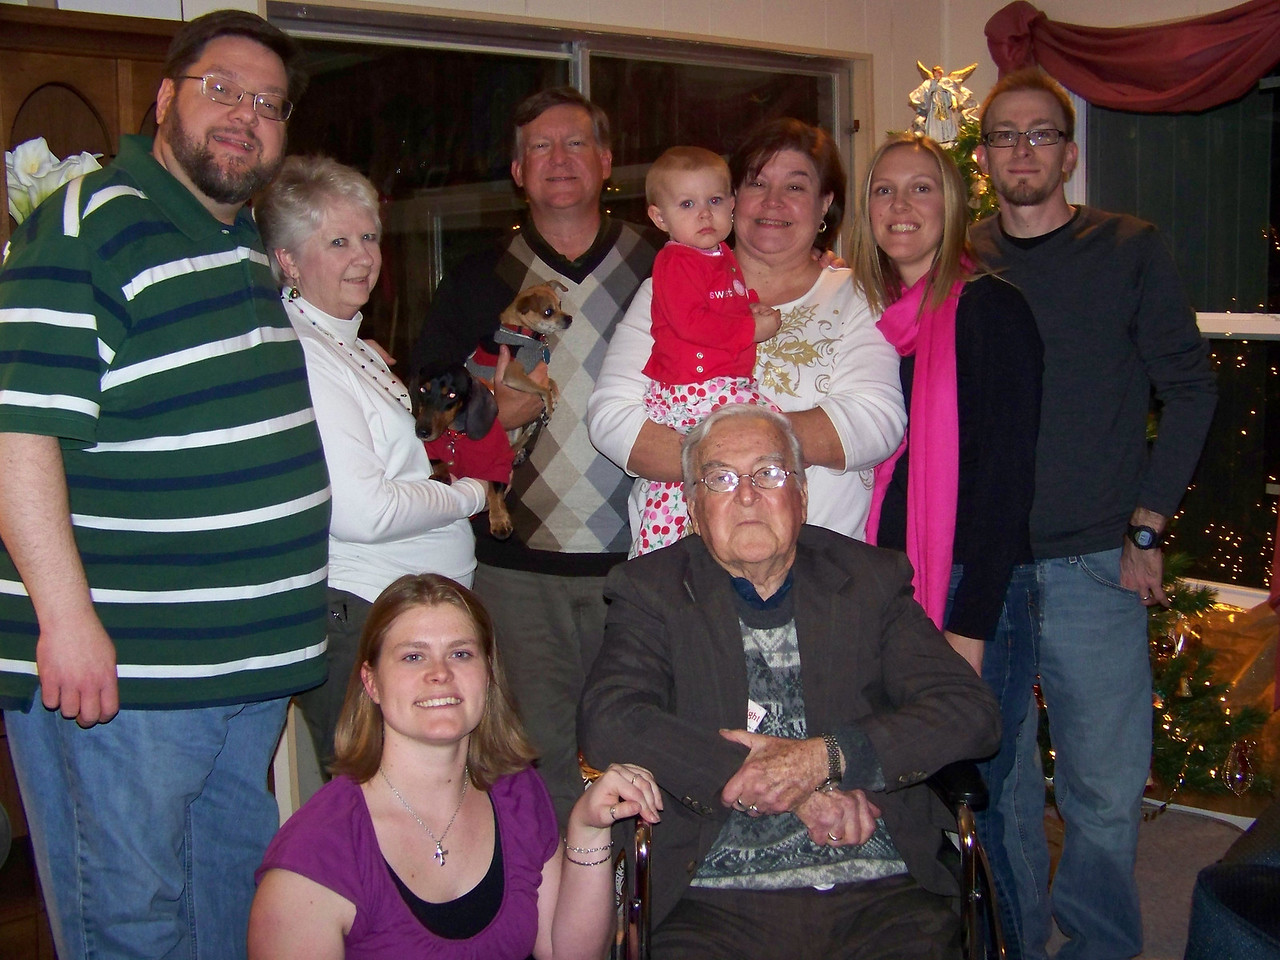 The whole family.  Standing:  Jon, Sheri holding Oscar, Mark holding Chica, Embyr being held by Wendy, Kalyn, Josh.  In front are Jenna and Dad.